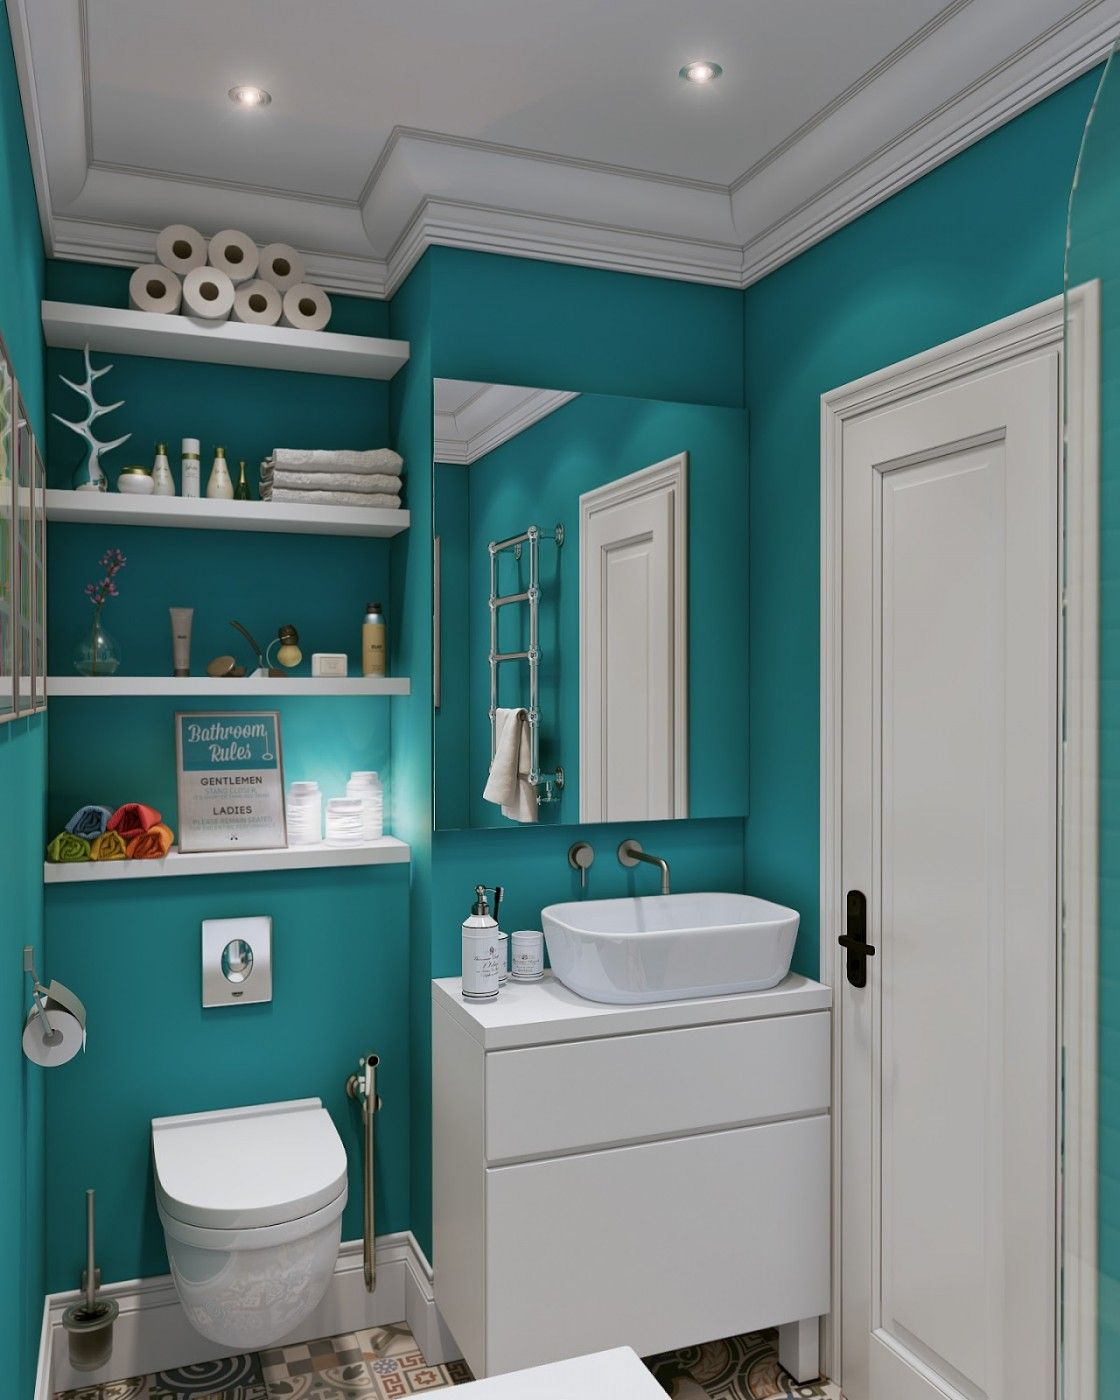 Contemporary Teal Bathroom Wall Color Scheme With Wooden Shelves Above Toilet As Bathroom Wall Colors Teal Bathroom Turquoise Bathroom